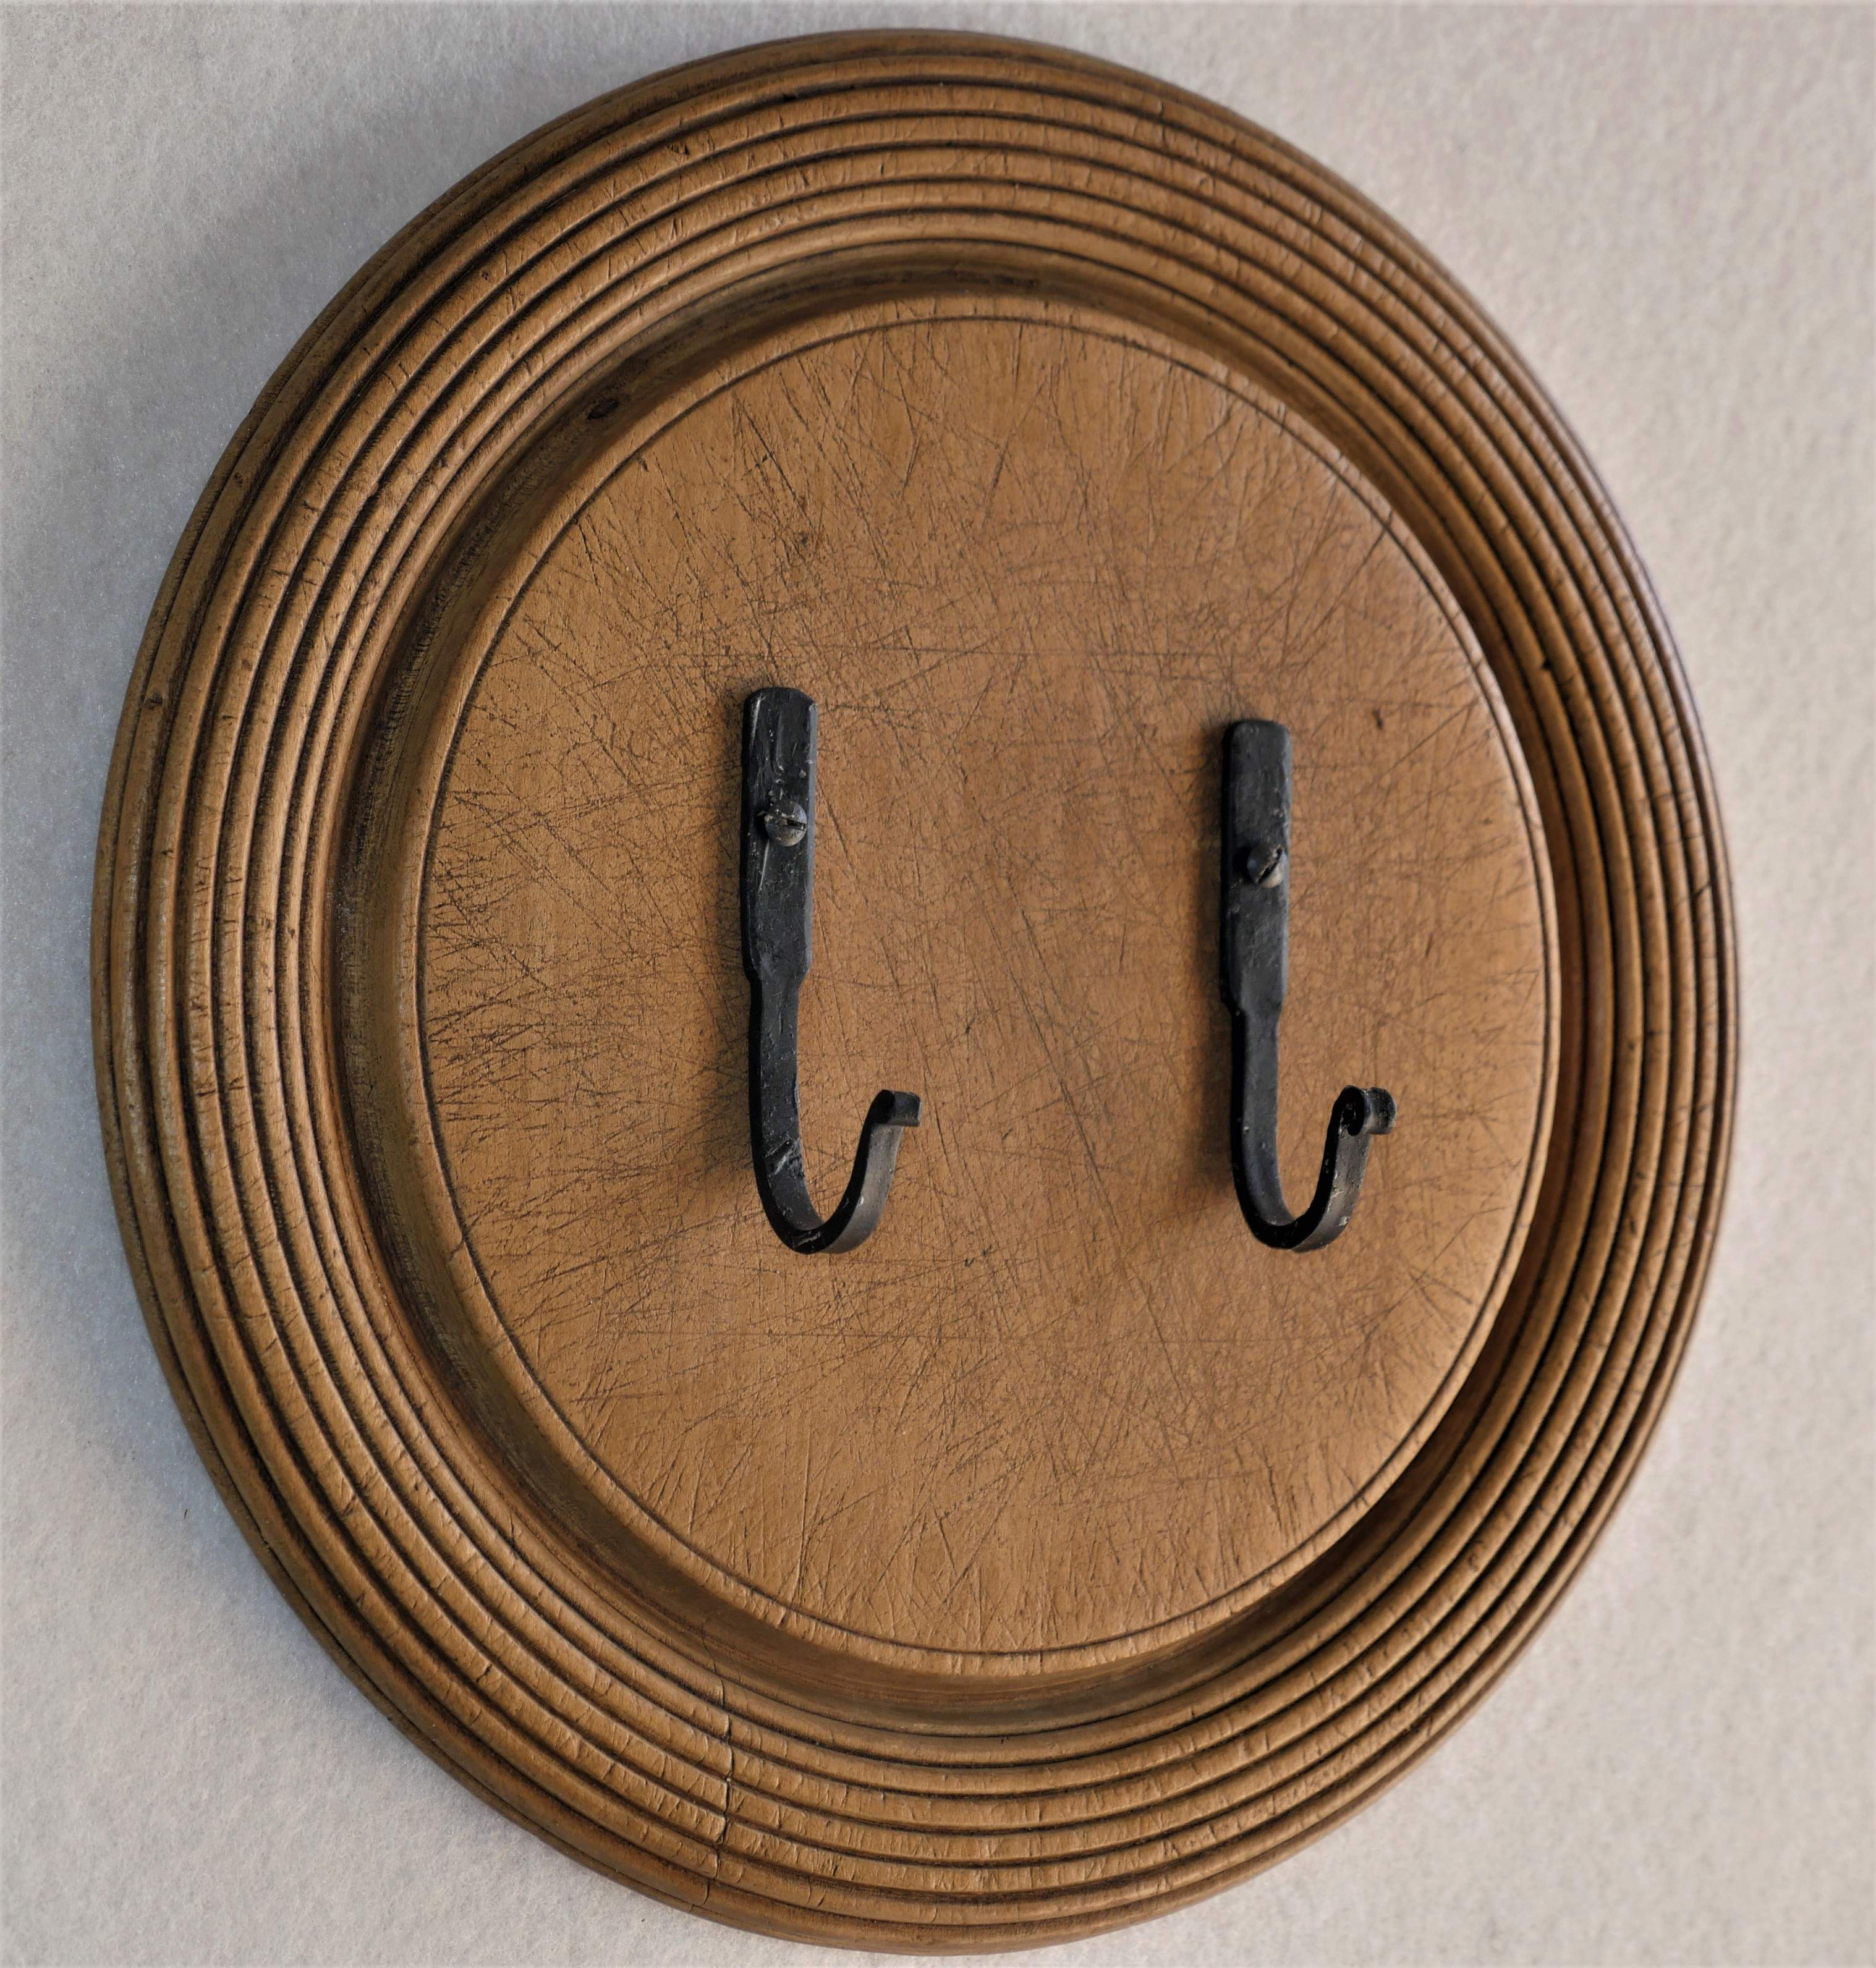 Vintage concentric design breadboard with hand forged hooks on.